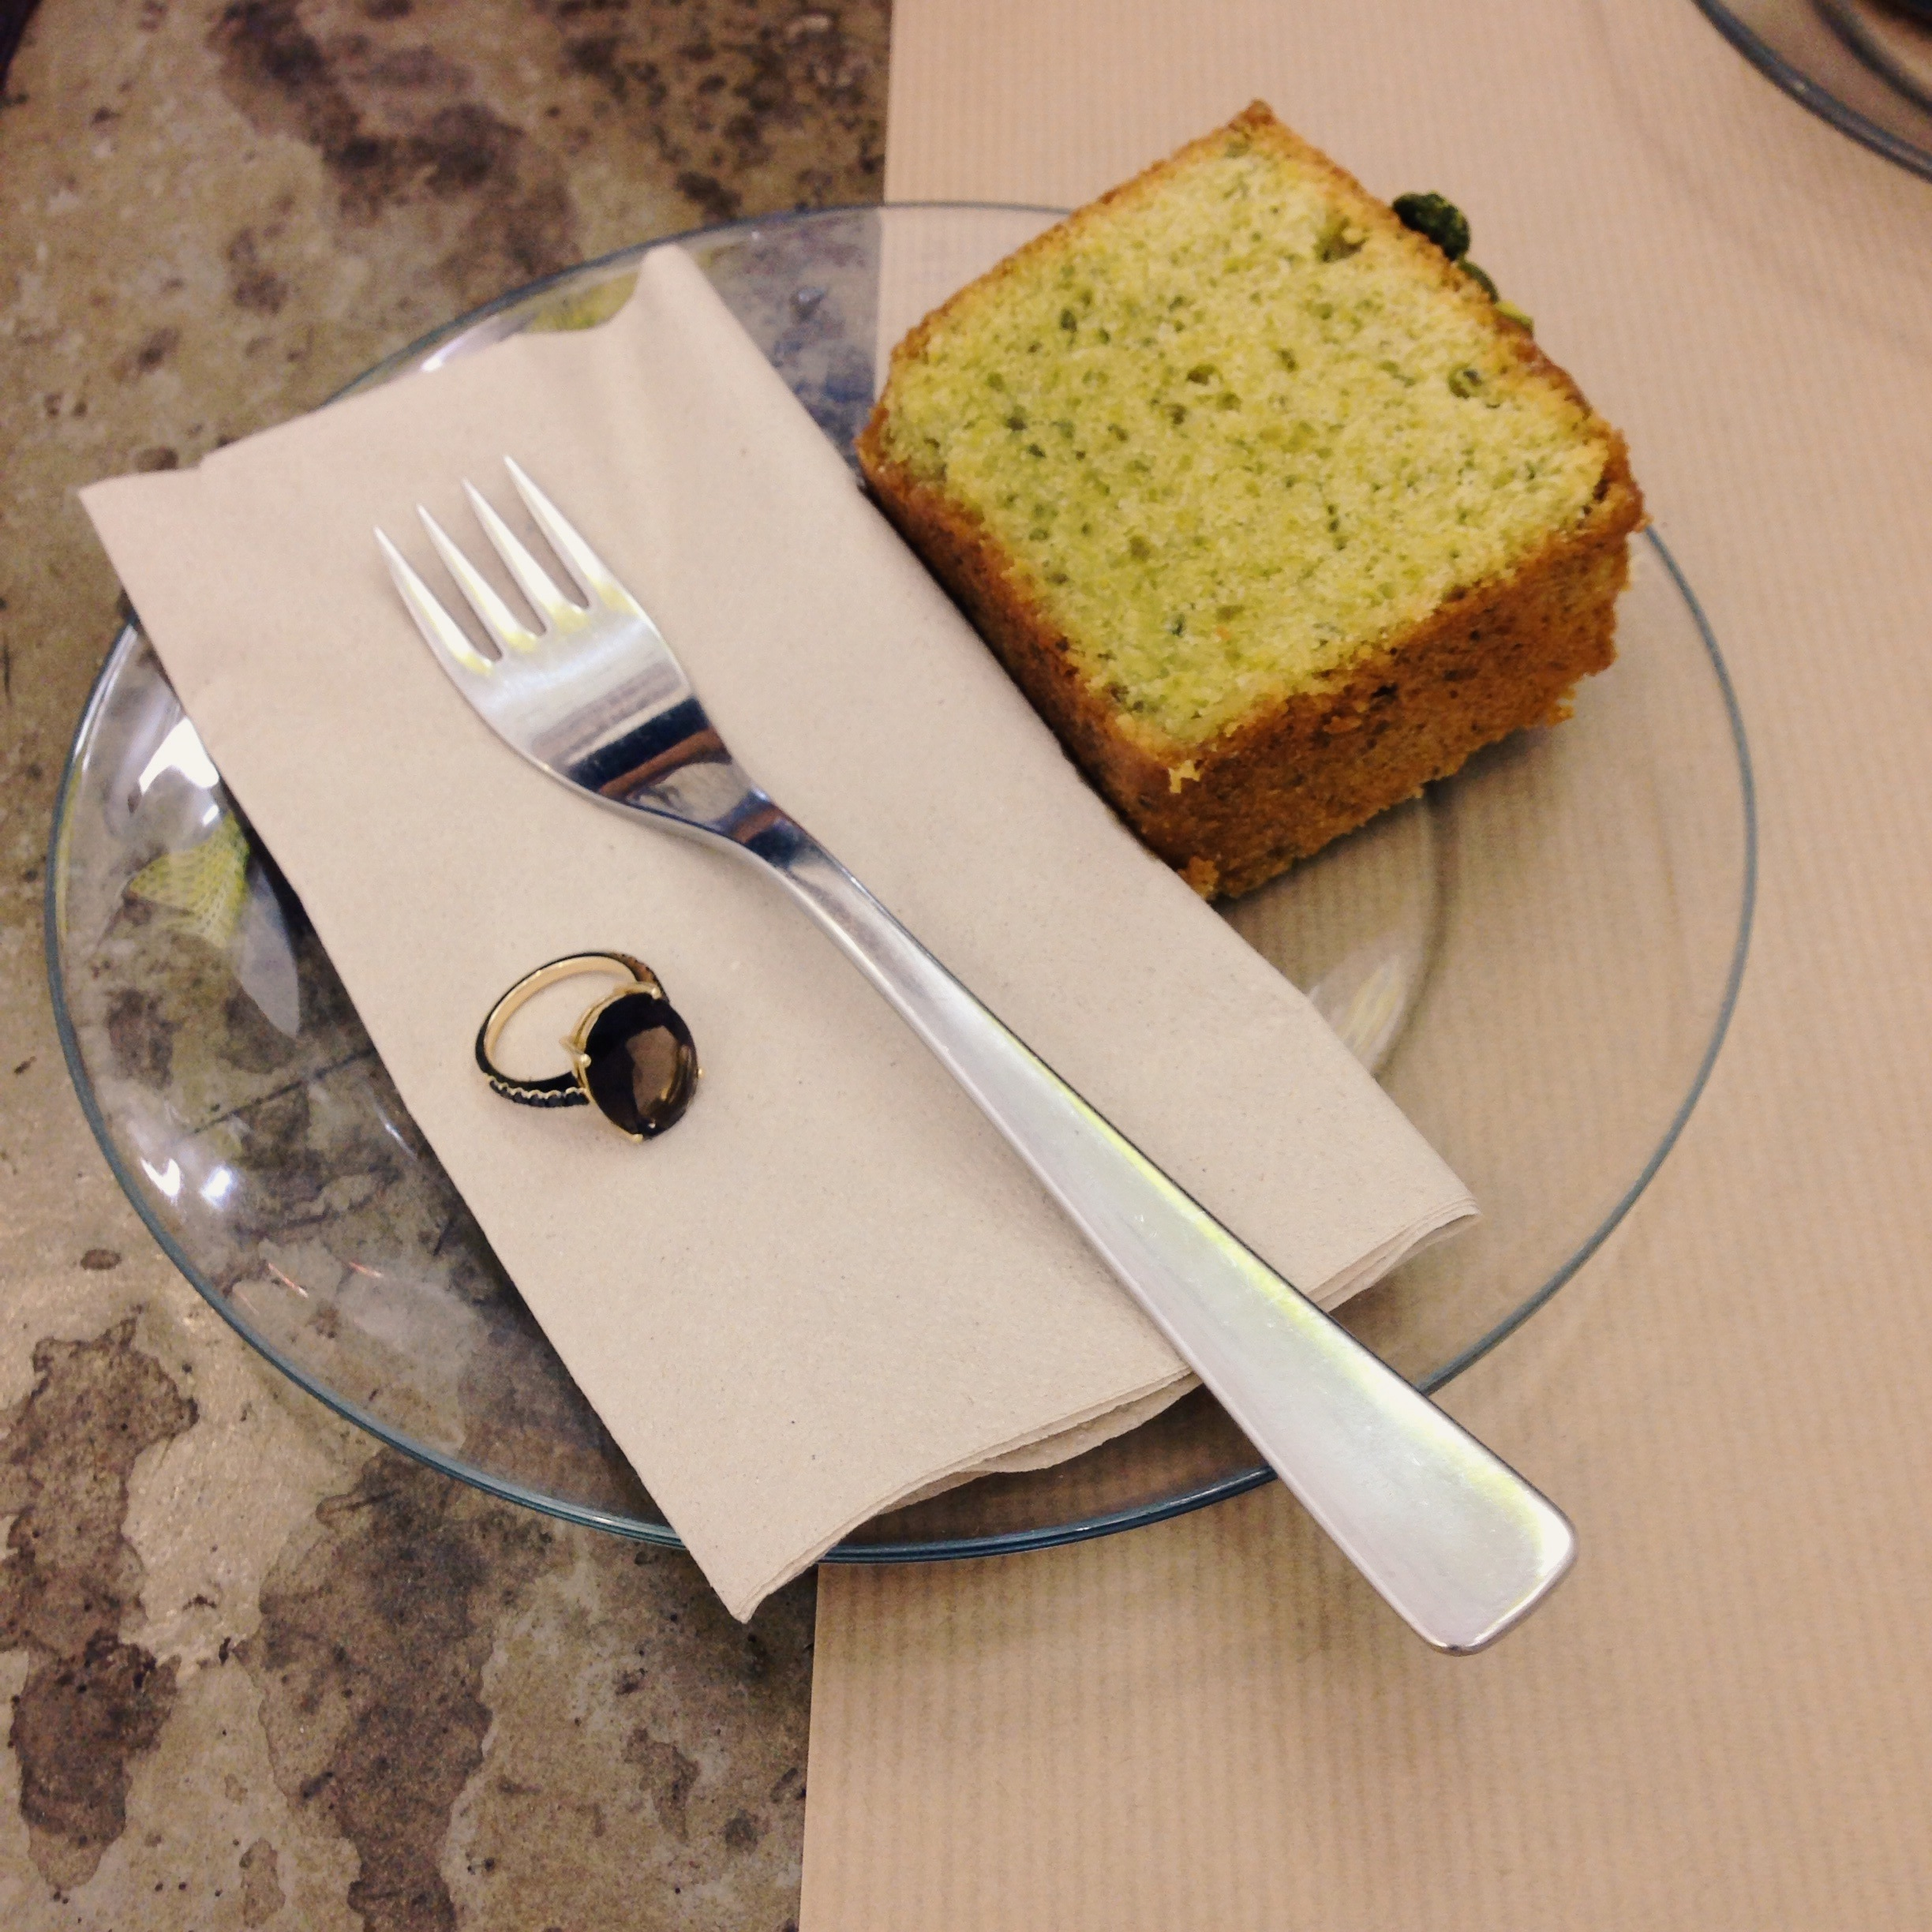 Engagement rings & pistachio cake at Rose Bakery, photo by  Ms Amy Farrell